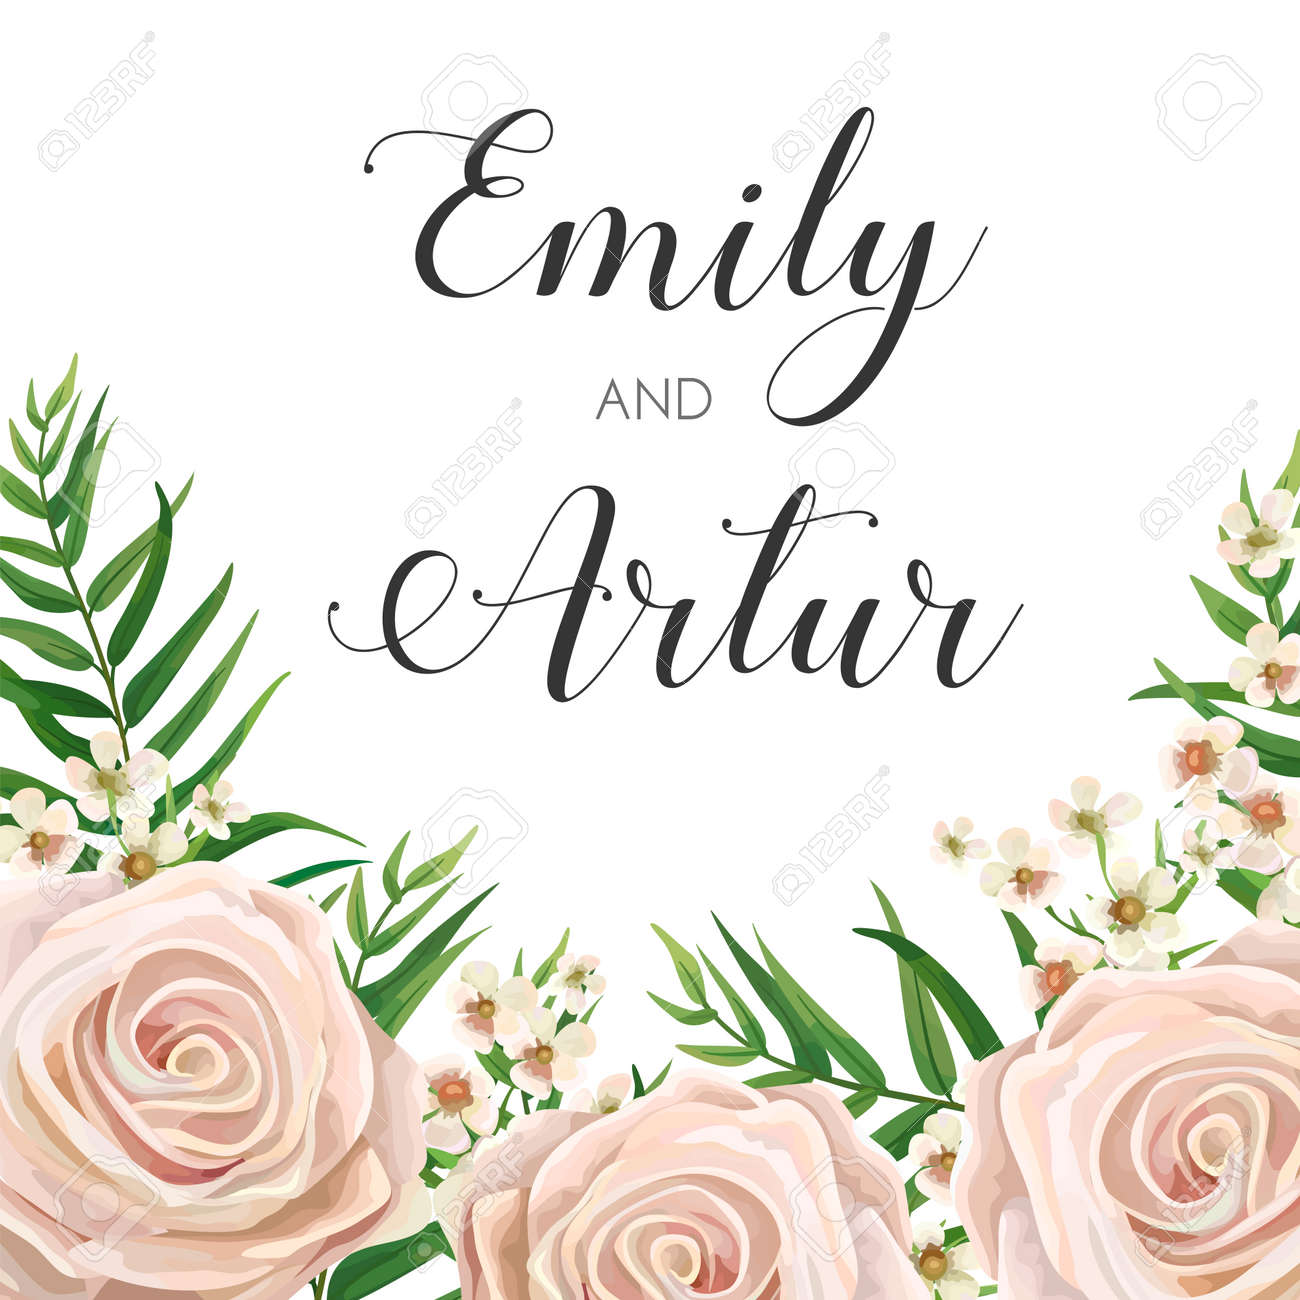 Wedding Invitation, floral invite card Design with creamy white garden rose flowers, wax flower, green tropical forest palm tree leaves greenery border, frame. - 94100018